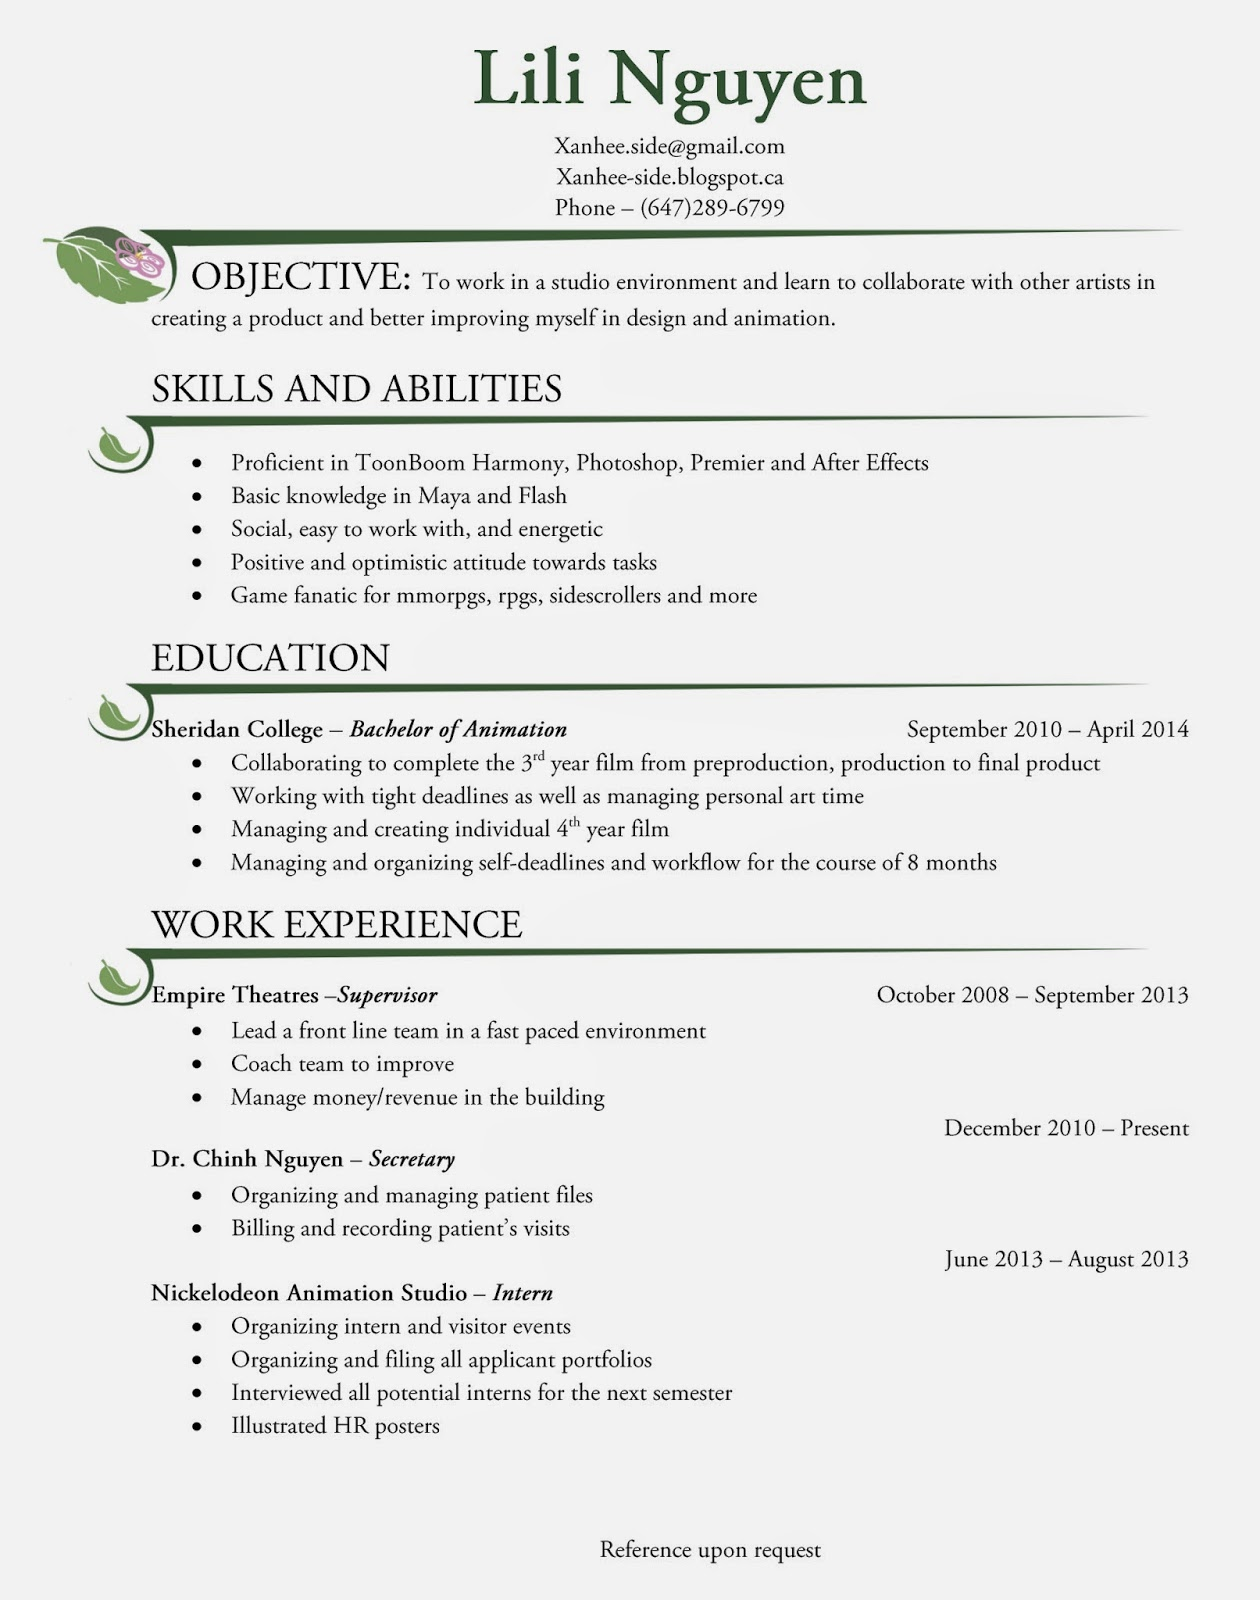 resume demo copy resume format resume format microsoft folder icon downloads exercise science resume sample demo - Filmmaker Resume Template